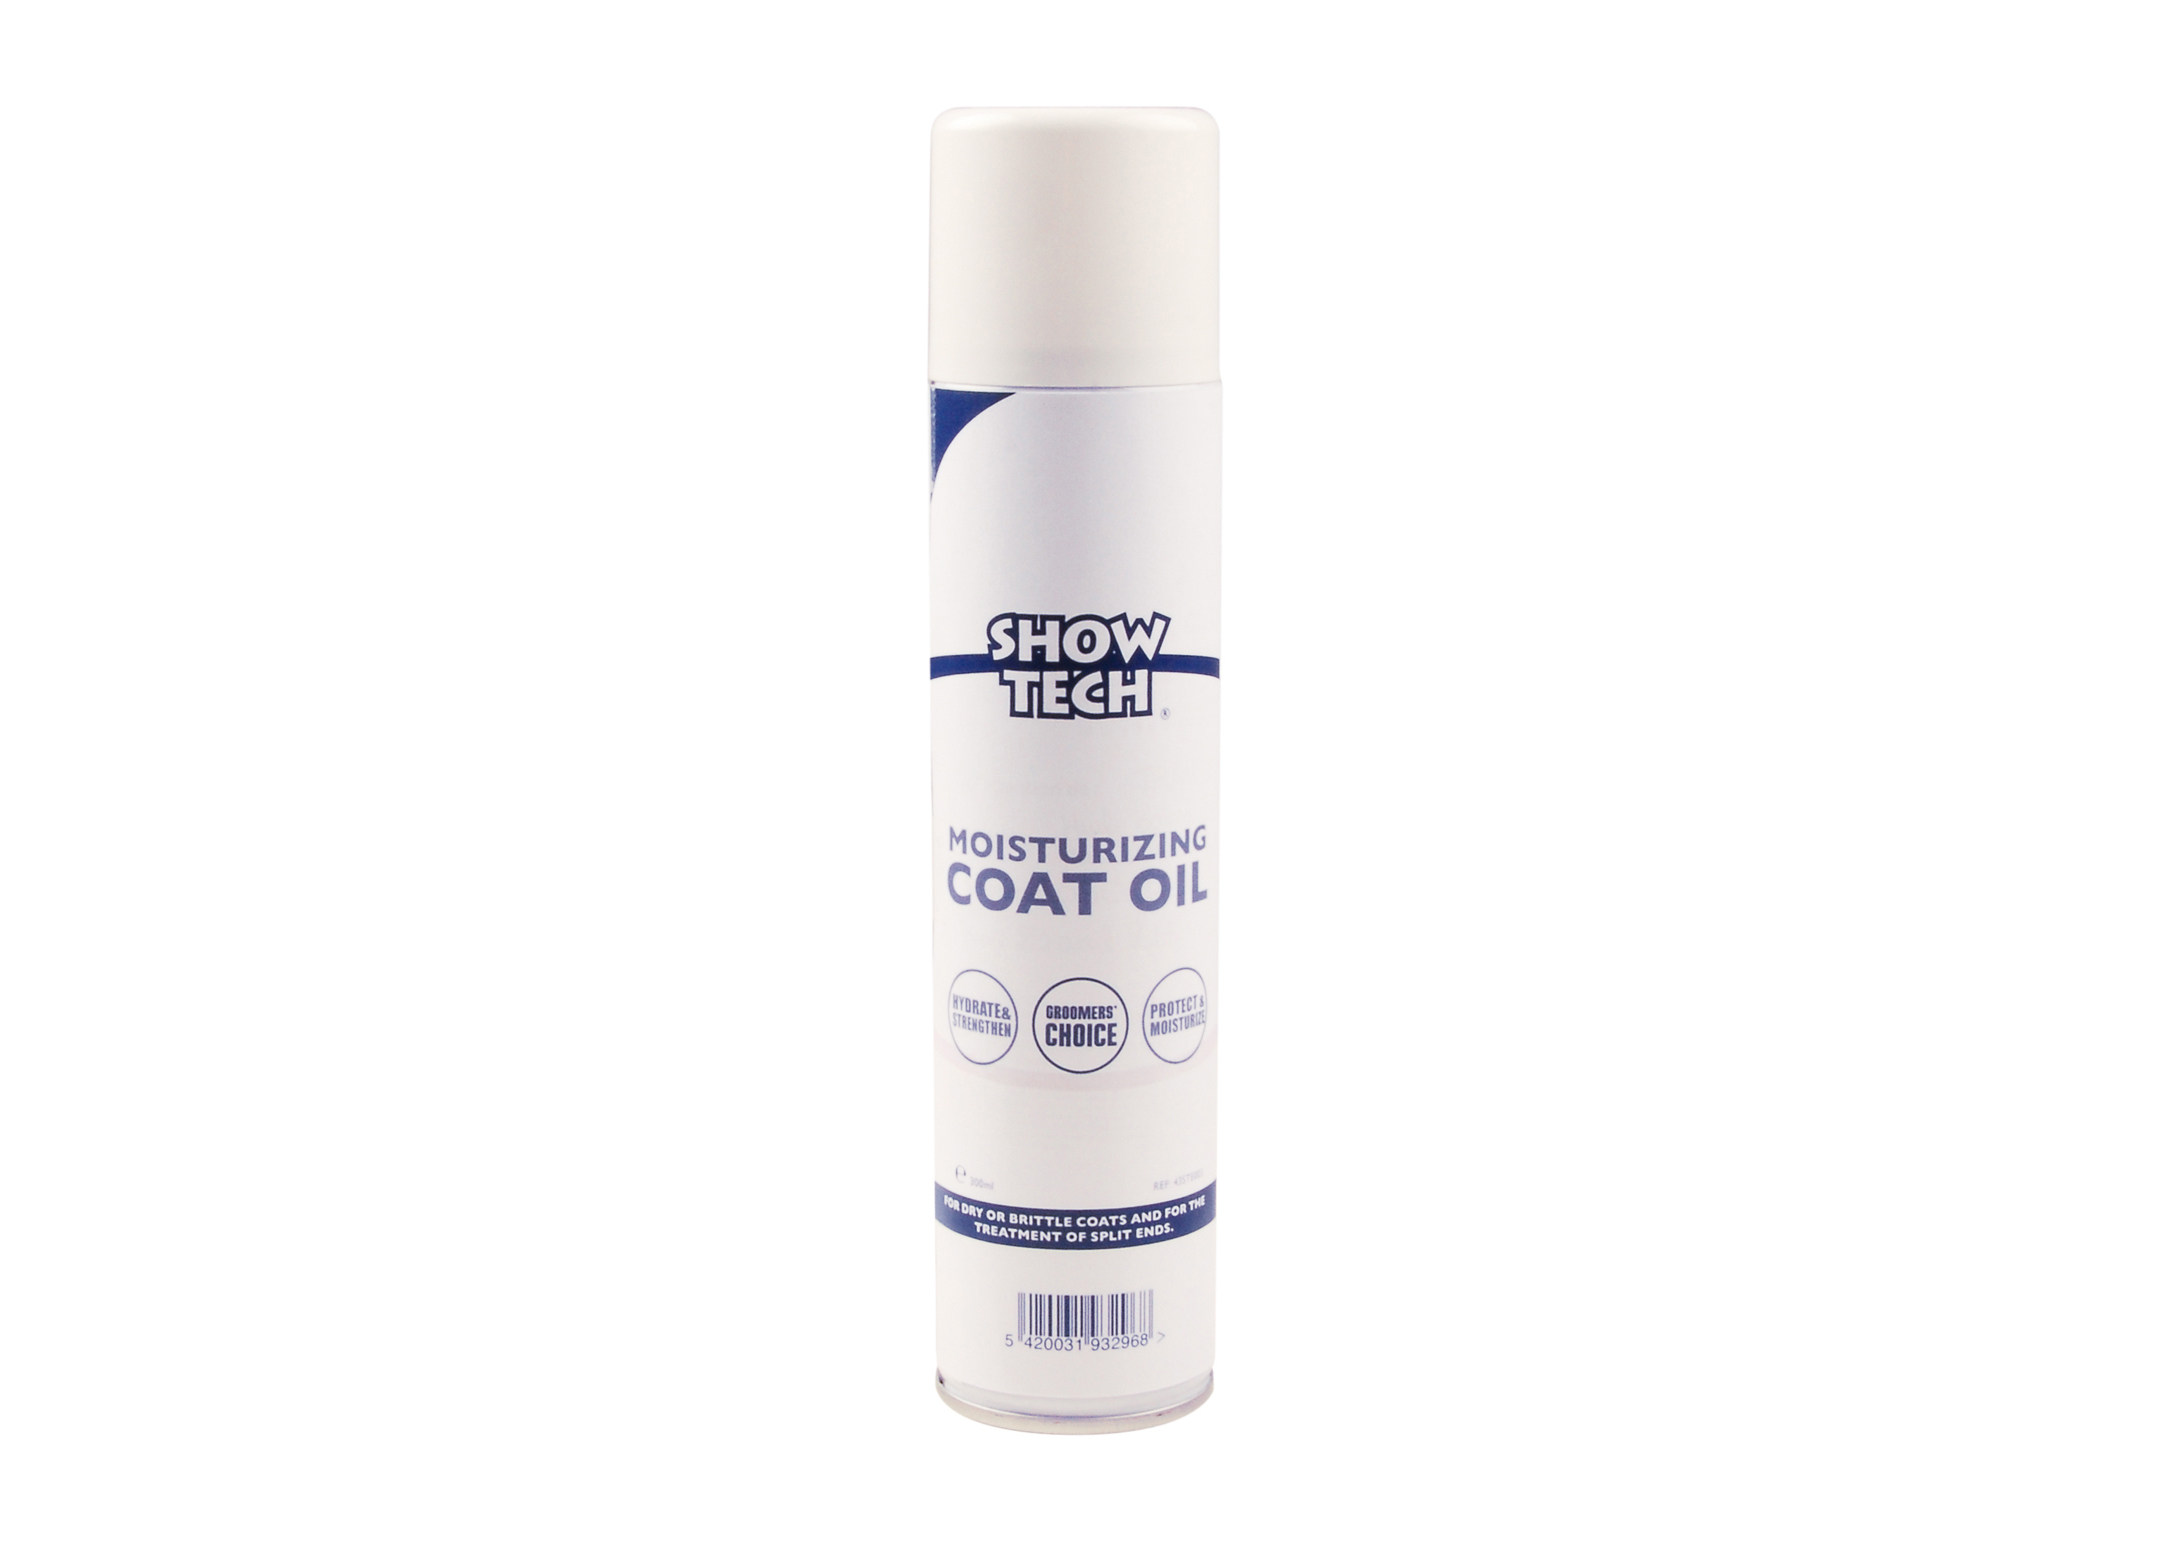 Show Tech Moisturizing Coat Oil 300ml Moisturizing Spray